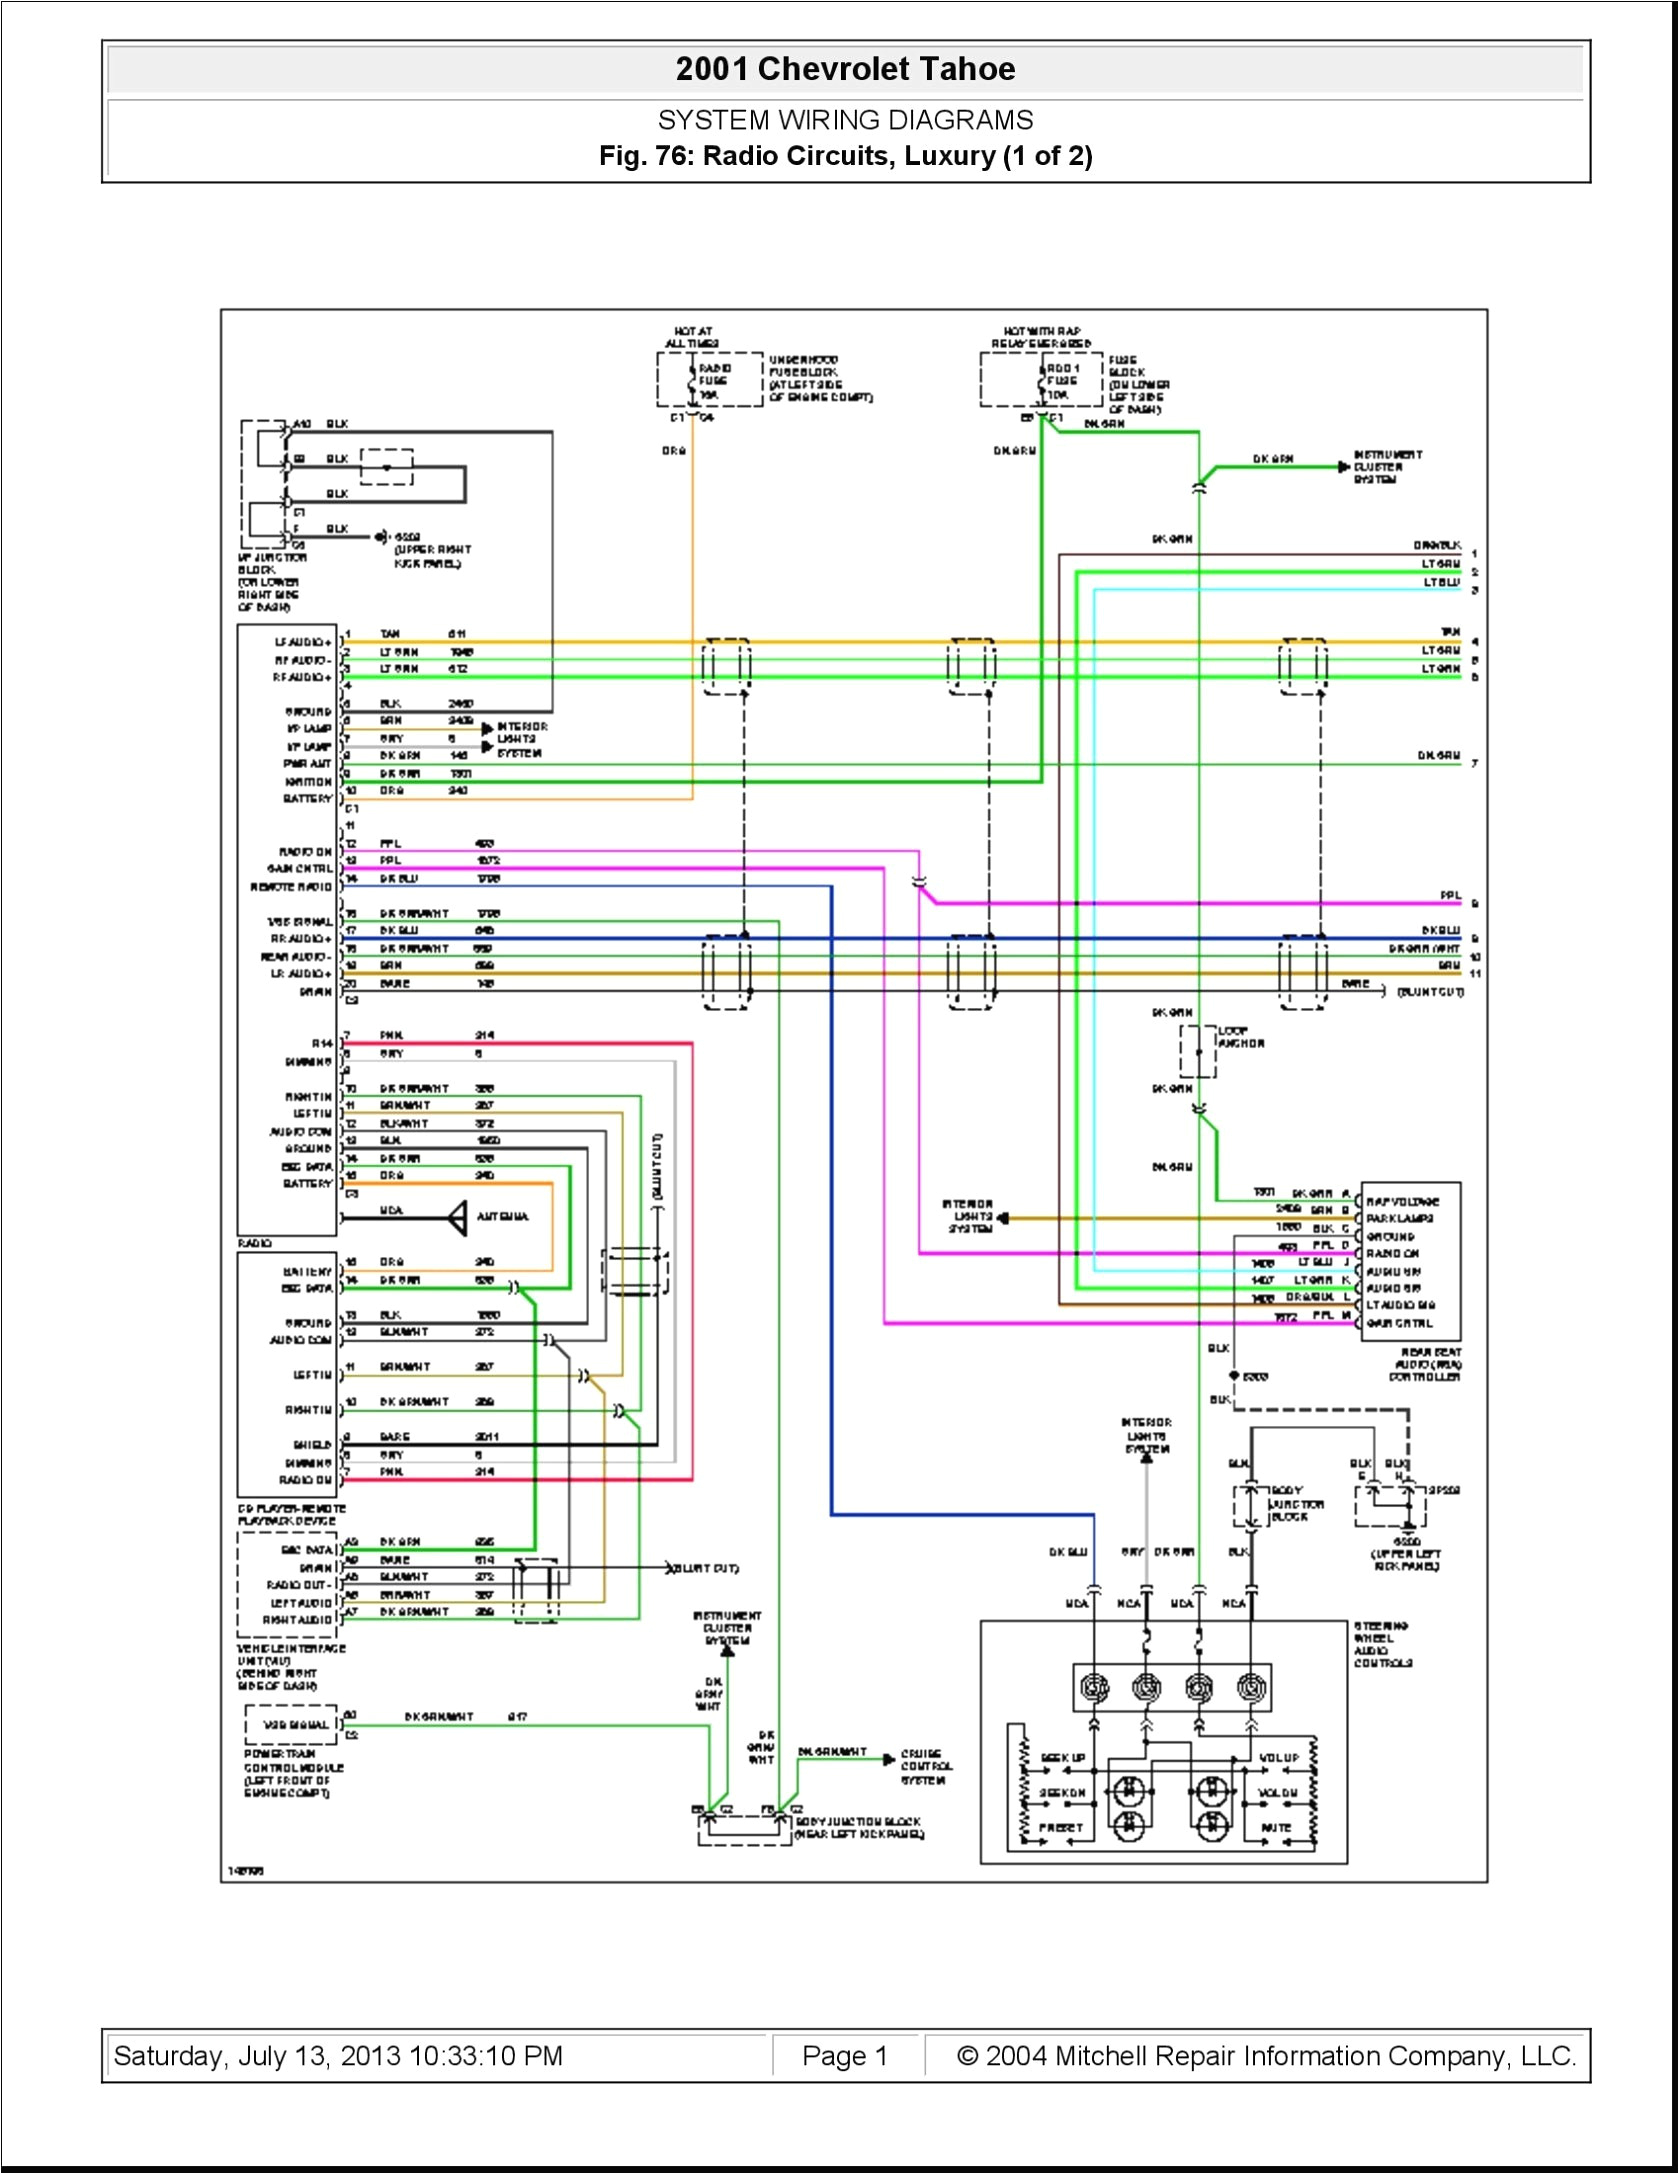 wiring diagram for 2013 silverado 1500 get free image about wiring wiring diagram for 2002 chevy silverado 1500 get free image about